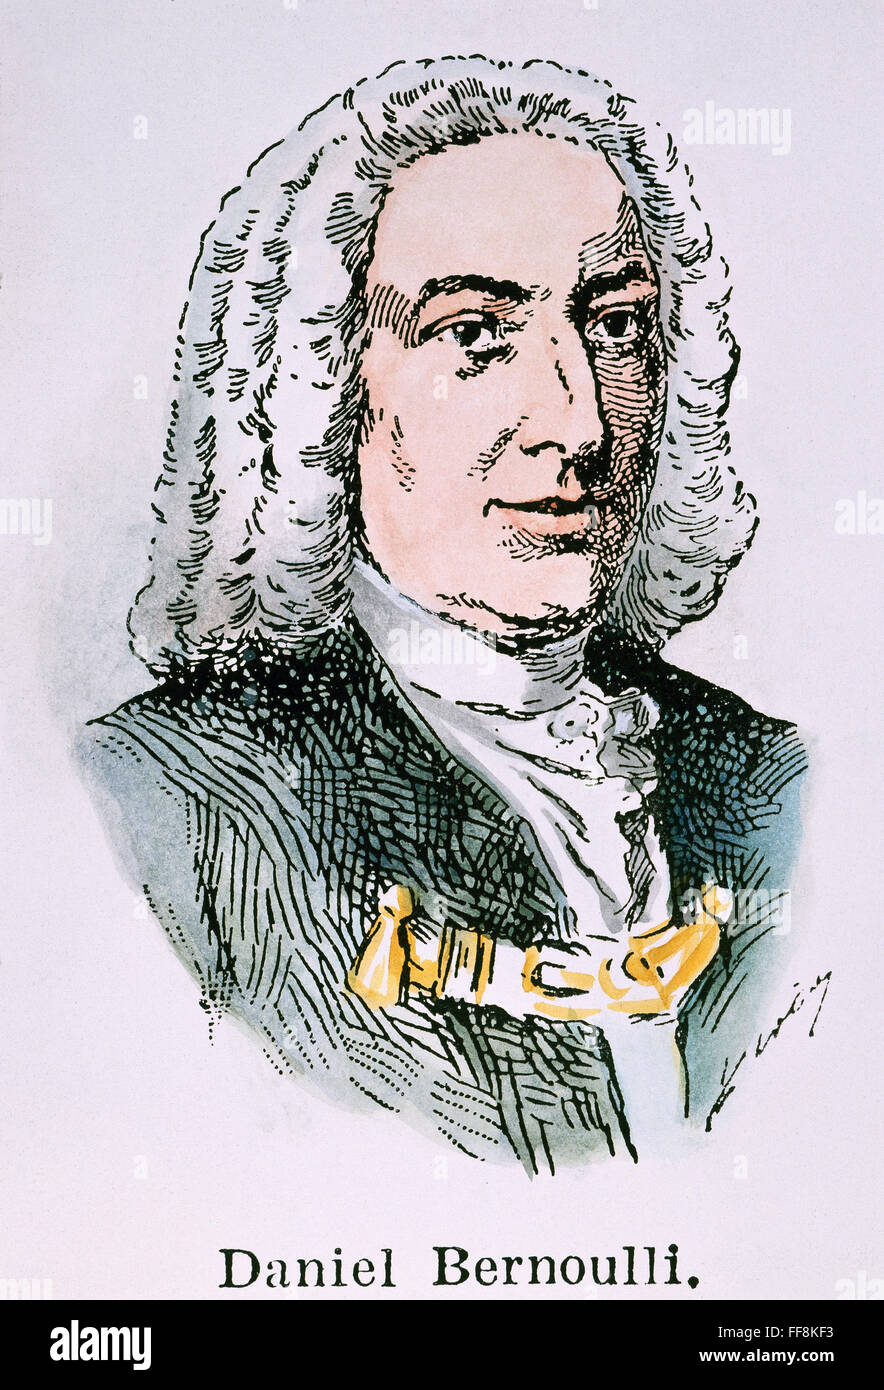 daniel bernoulli Definition of bernoulli, daniel – our online dictionary has bernoulli, daniel information from complete dictionary of scientific biography dictionary.